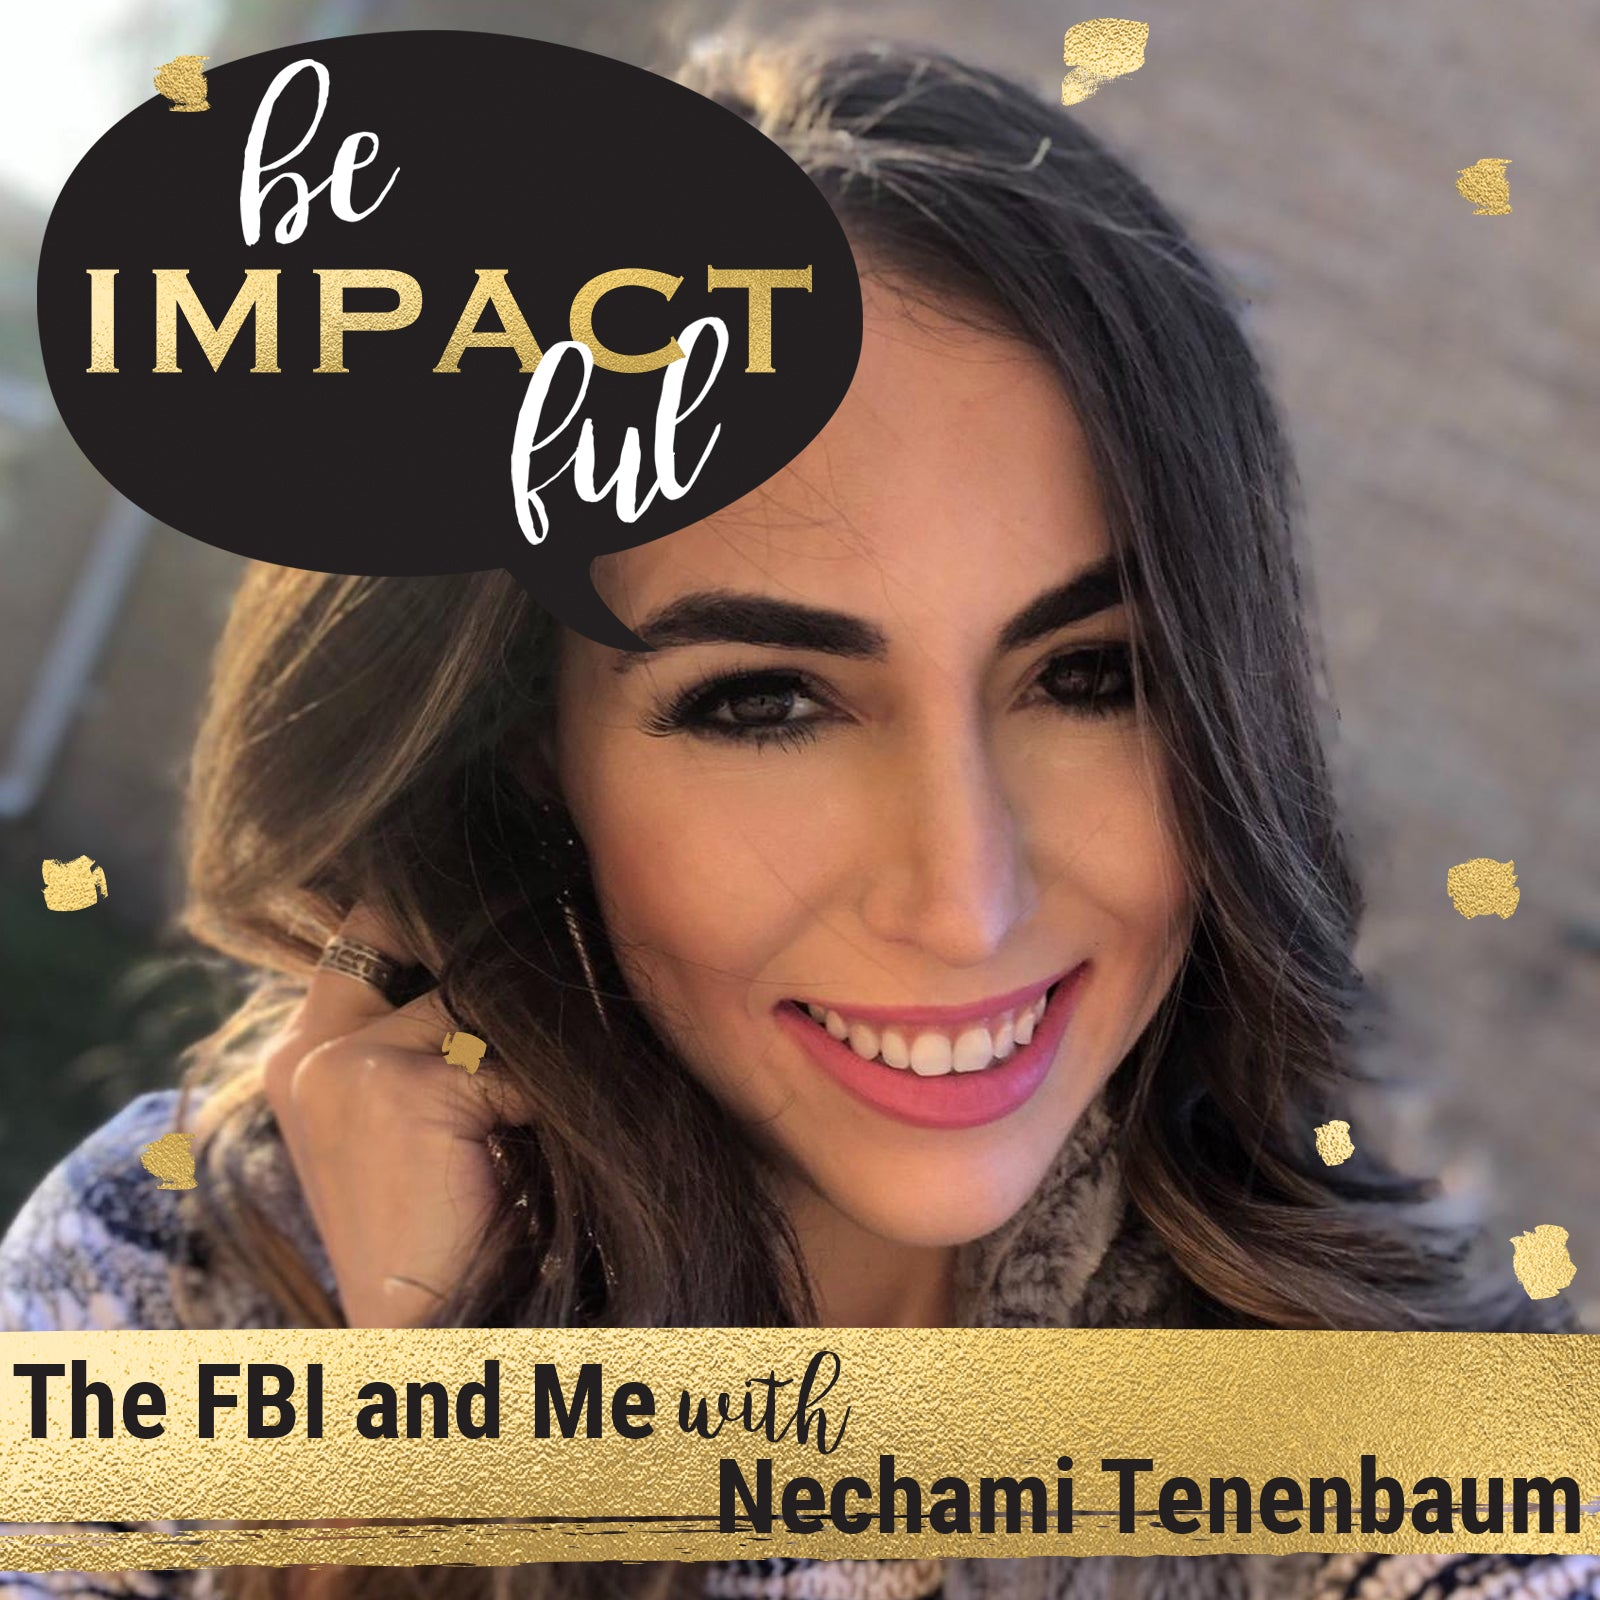 The FBI and Me with Nechami Tenenbaum